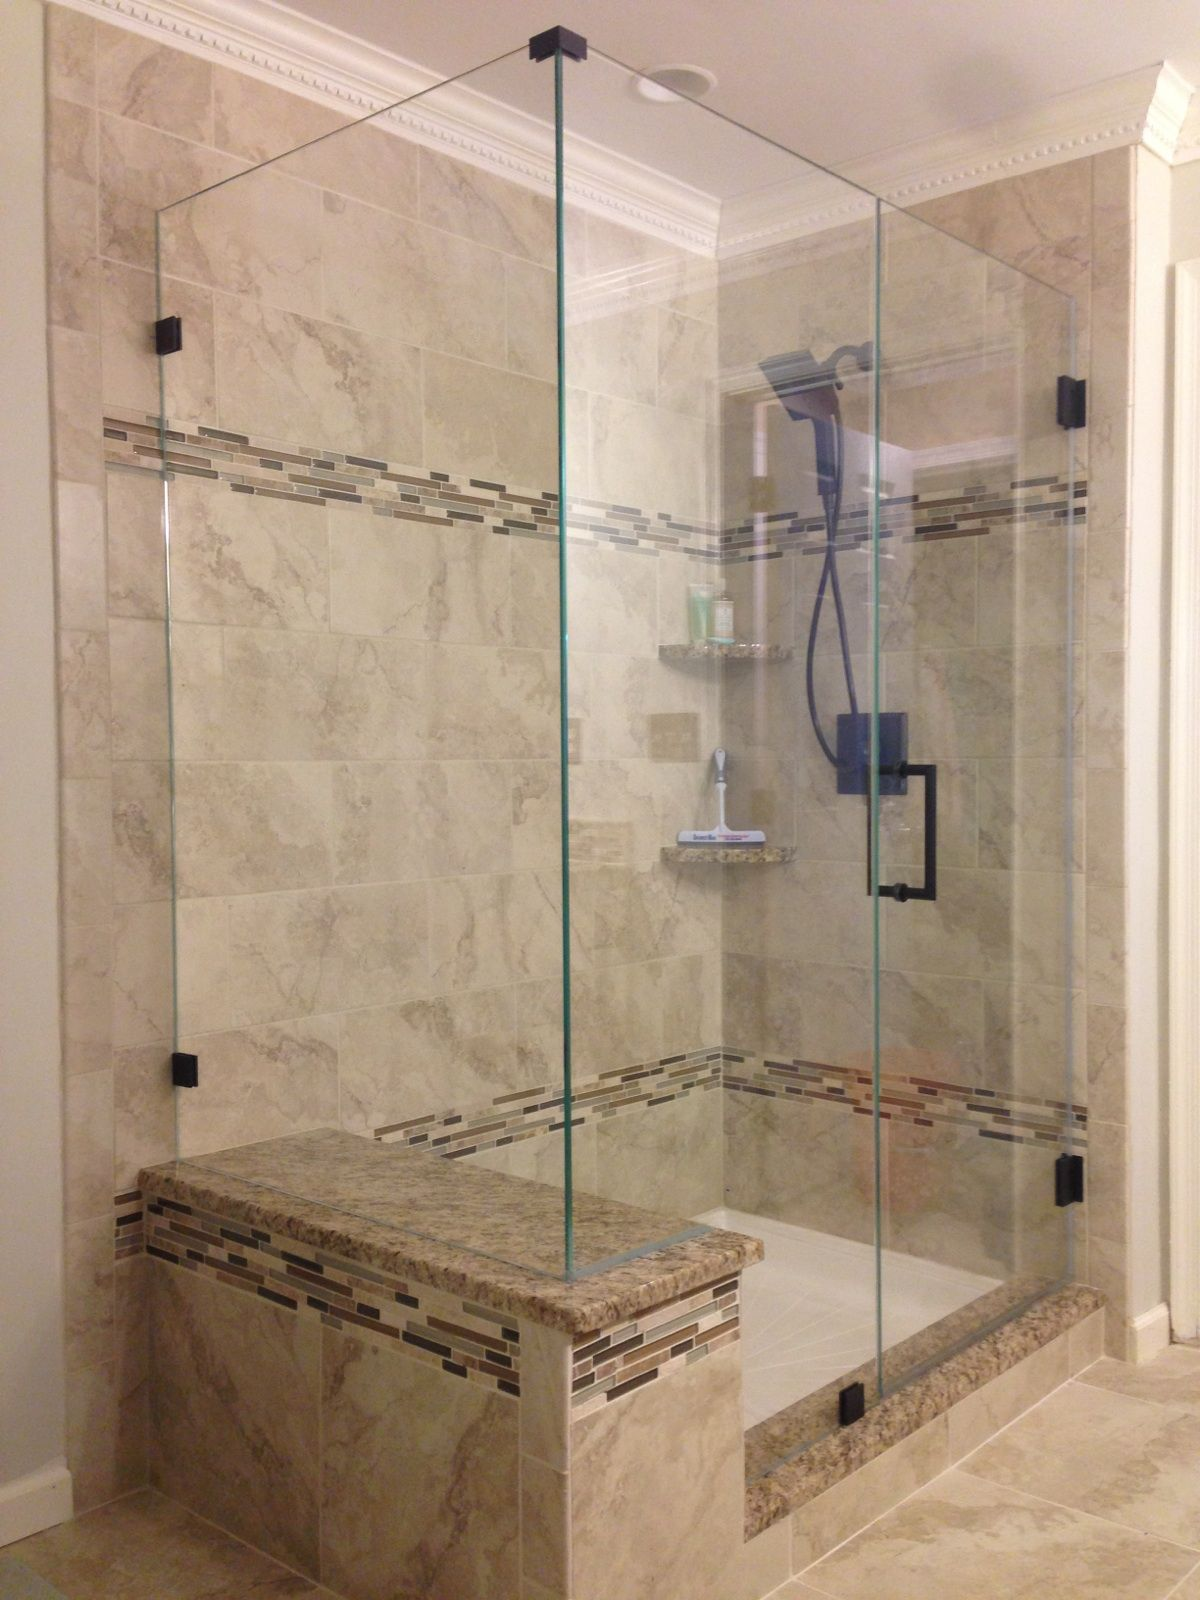 Frameless Shower Enclosure Cleaning Doors Doesn T Have To Be A Dreaded Task Your Glass Can Stay Protected With These 4